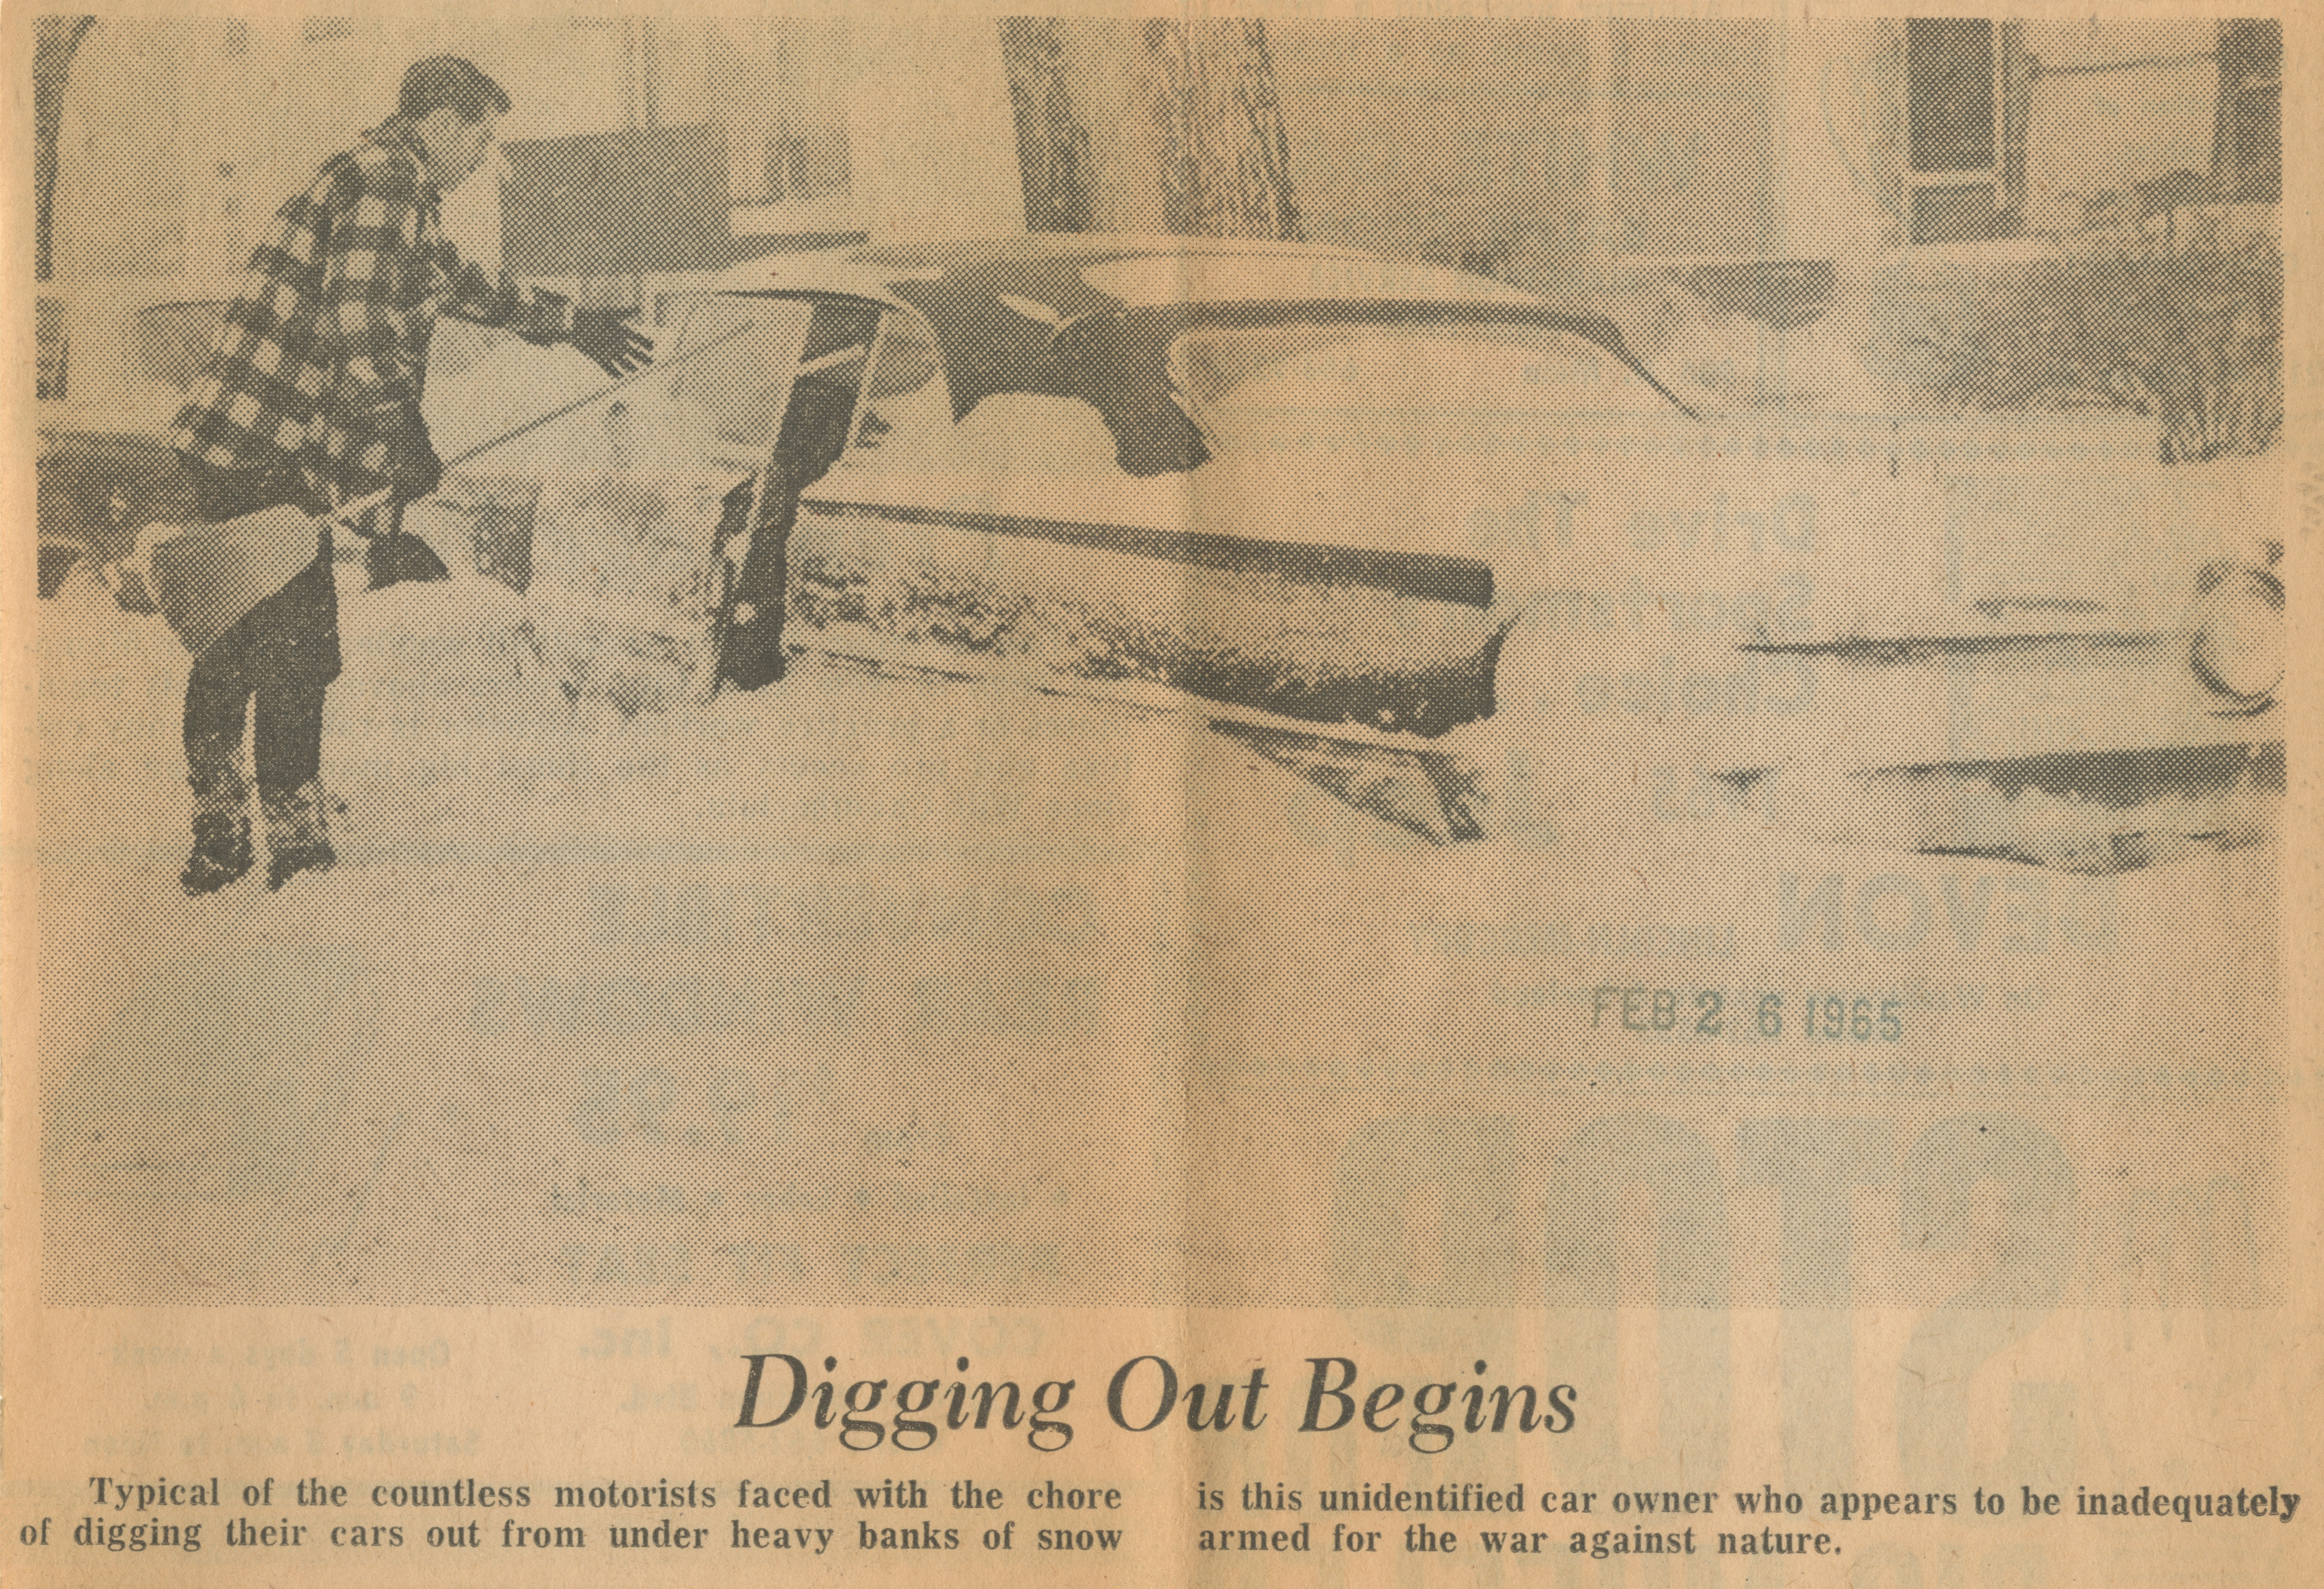 Digging Out Begins image